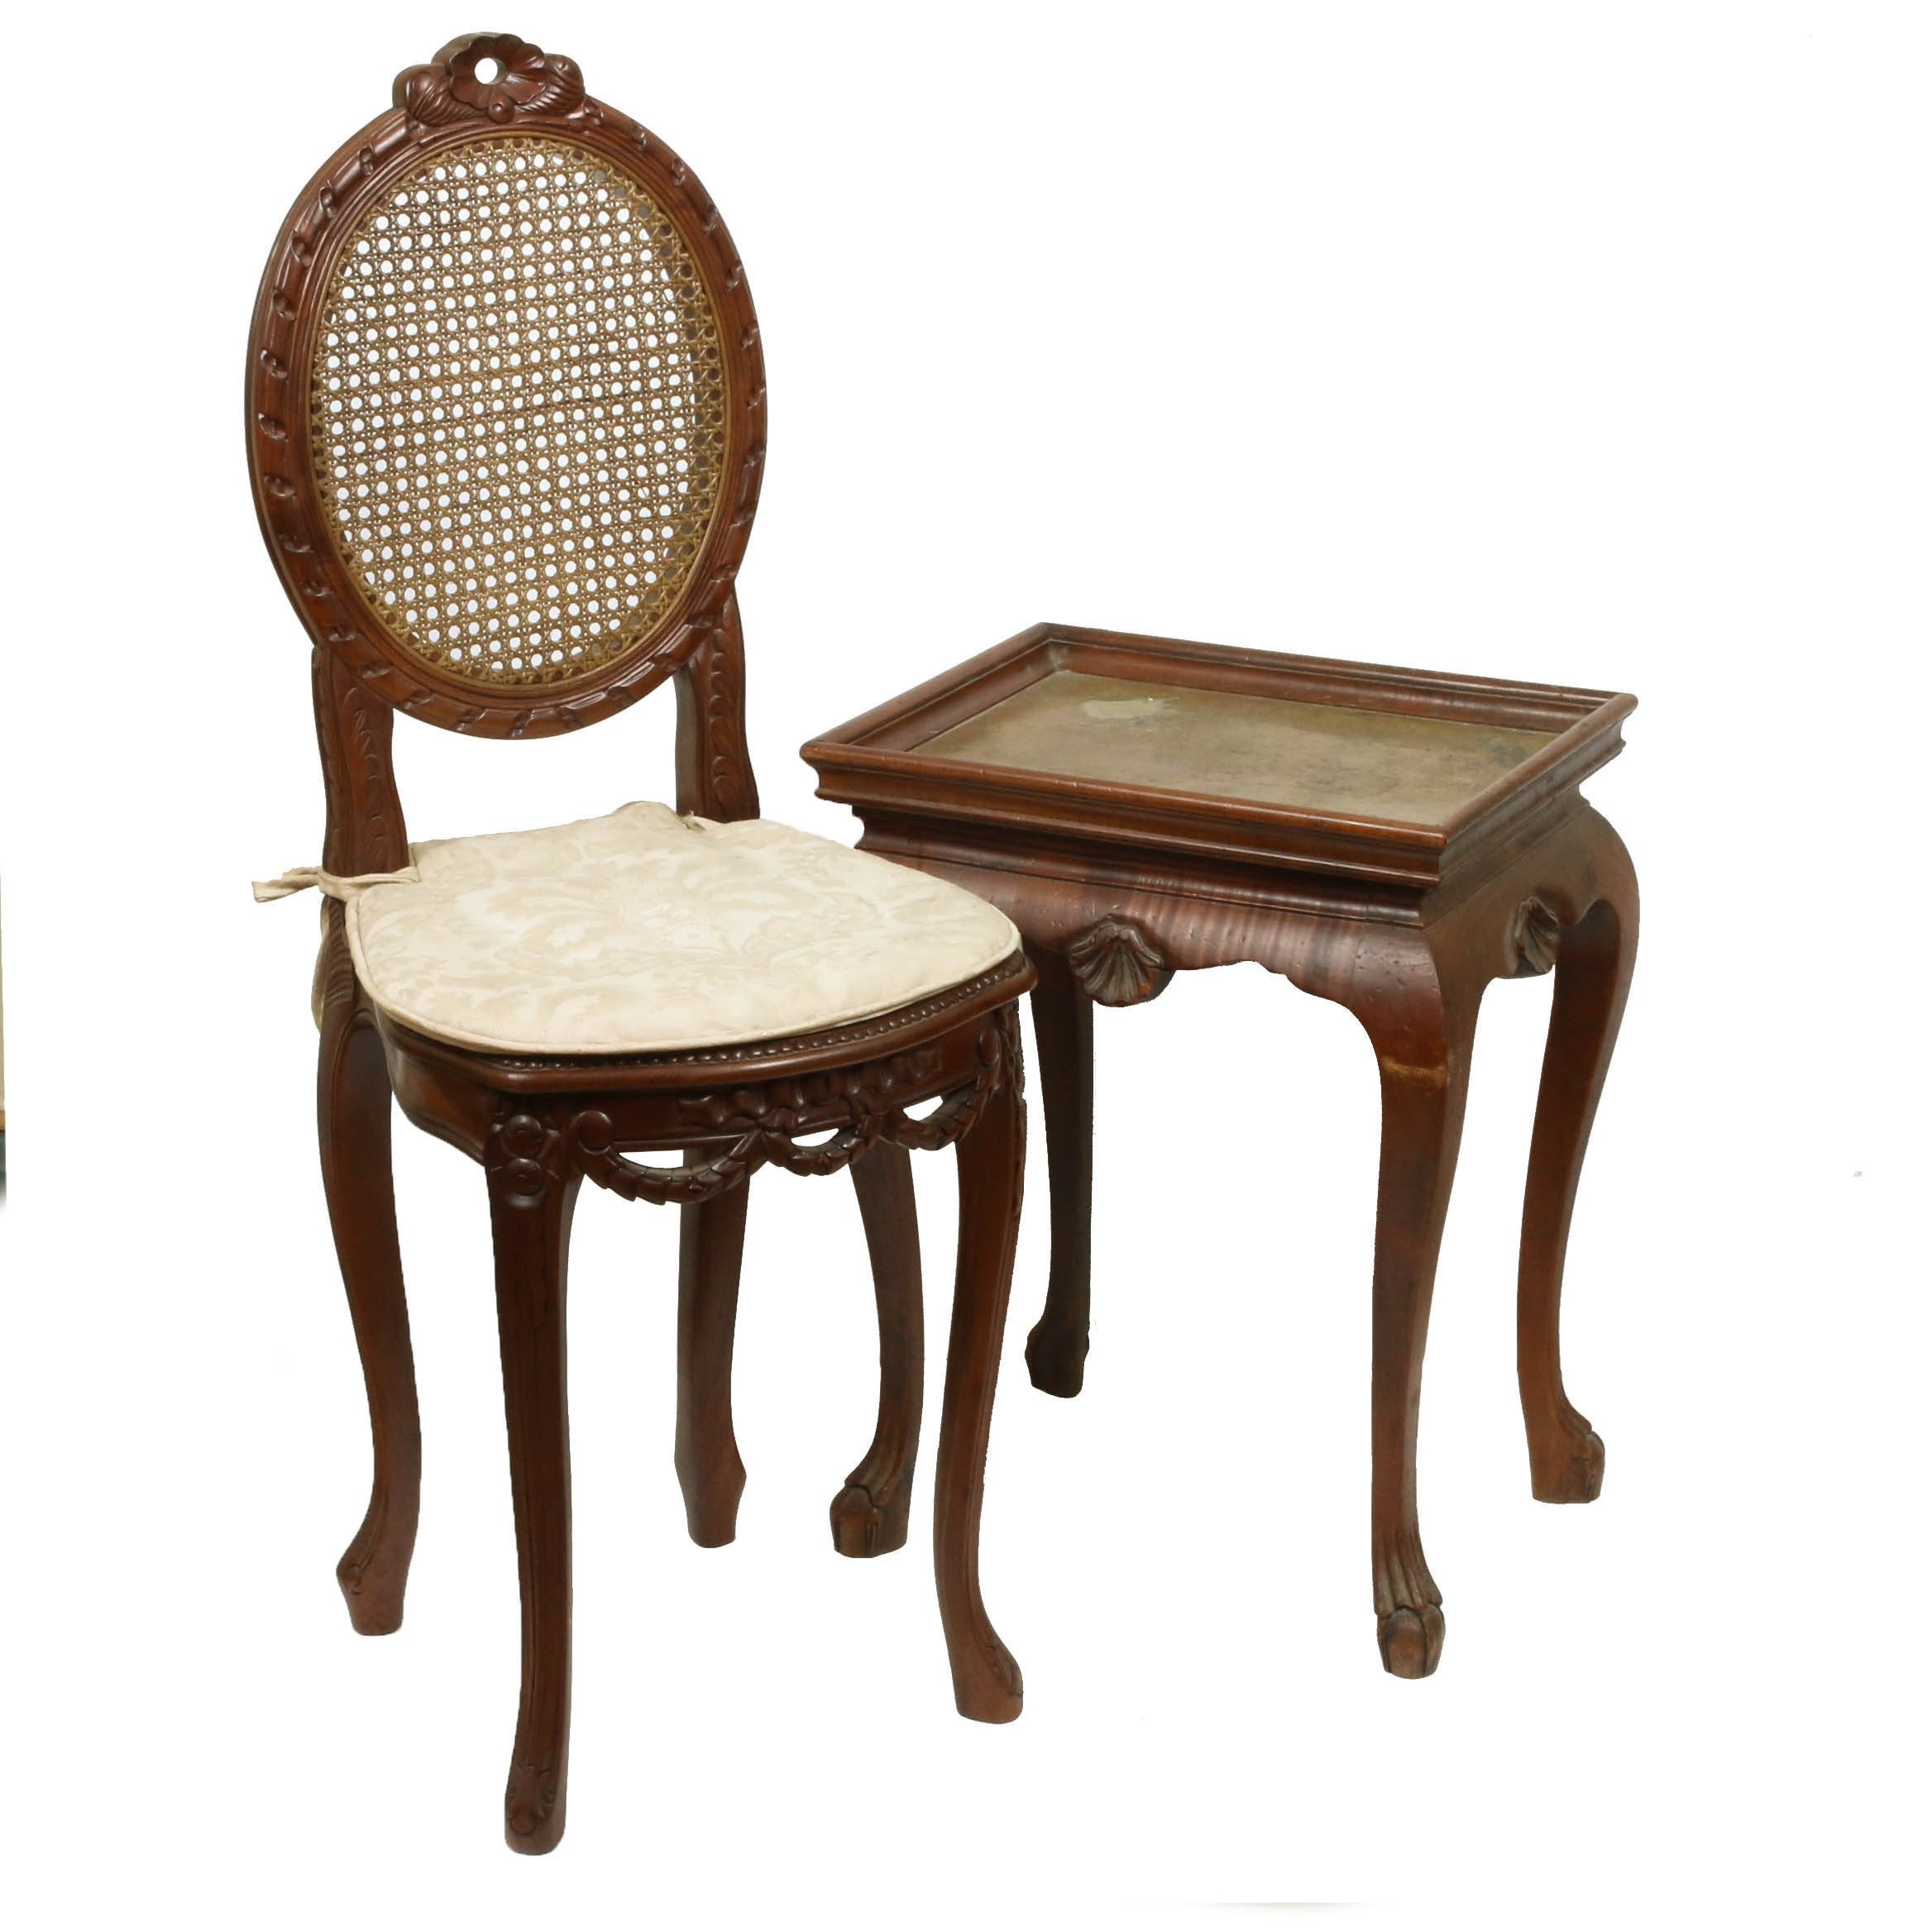 Cane Back Side Chair with Ornate Queen Anne Style Accent TableEdit